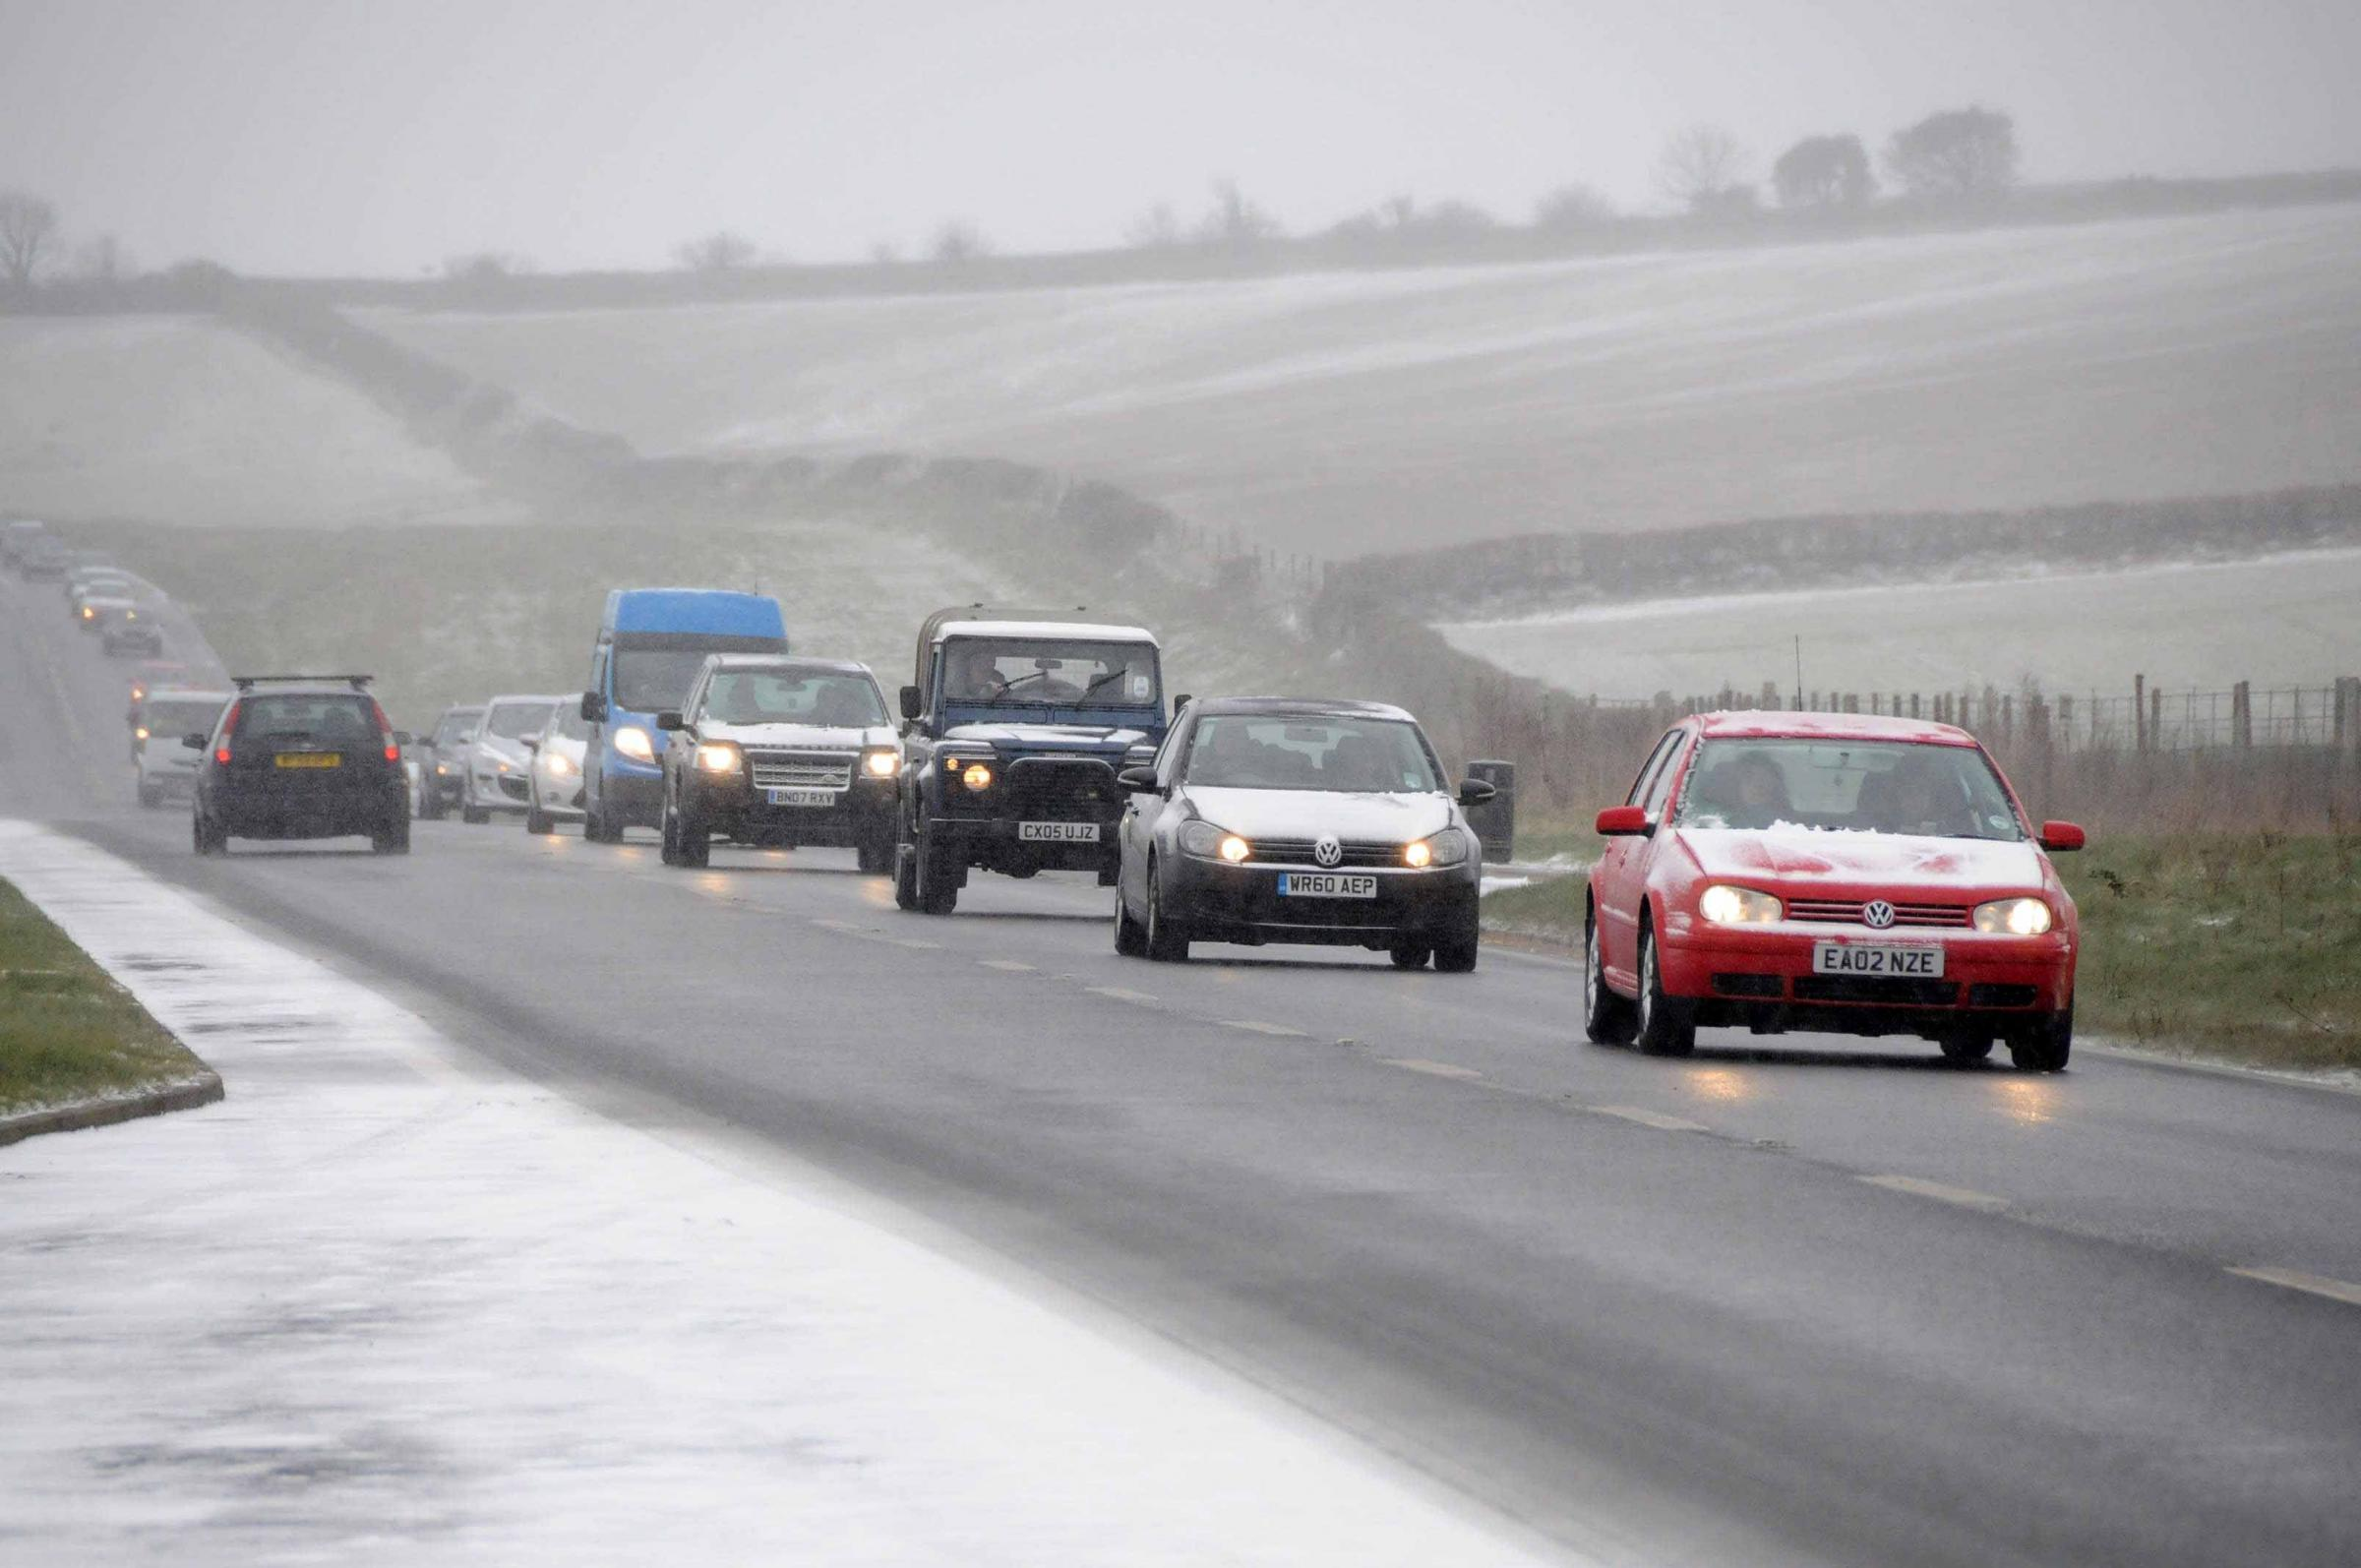 Flurry of snow before London heatwave